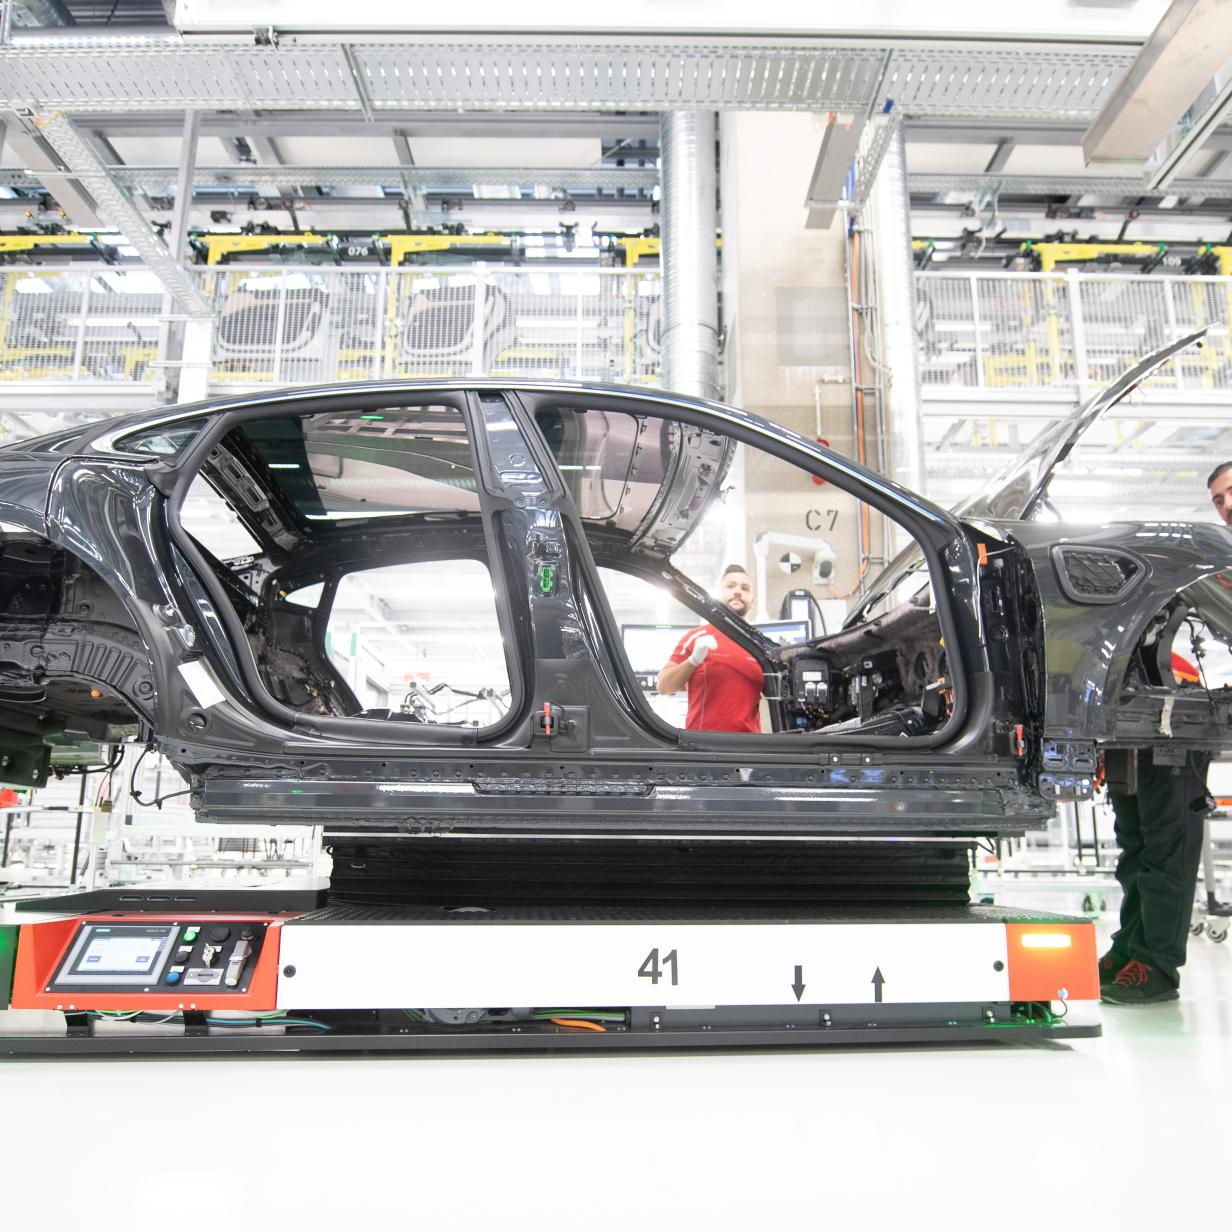 IT-Probleme legen Produktion bei Porsche lahm